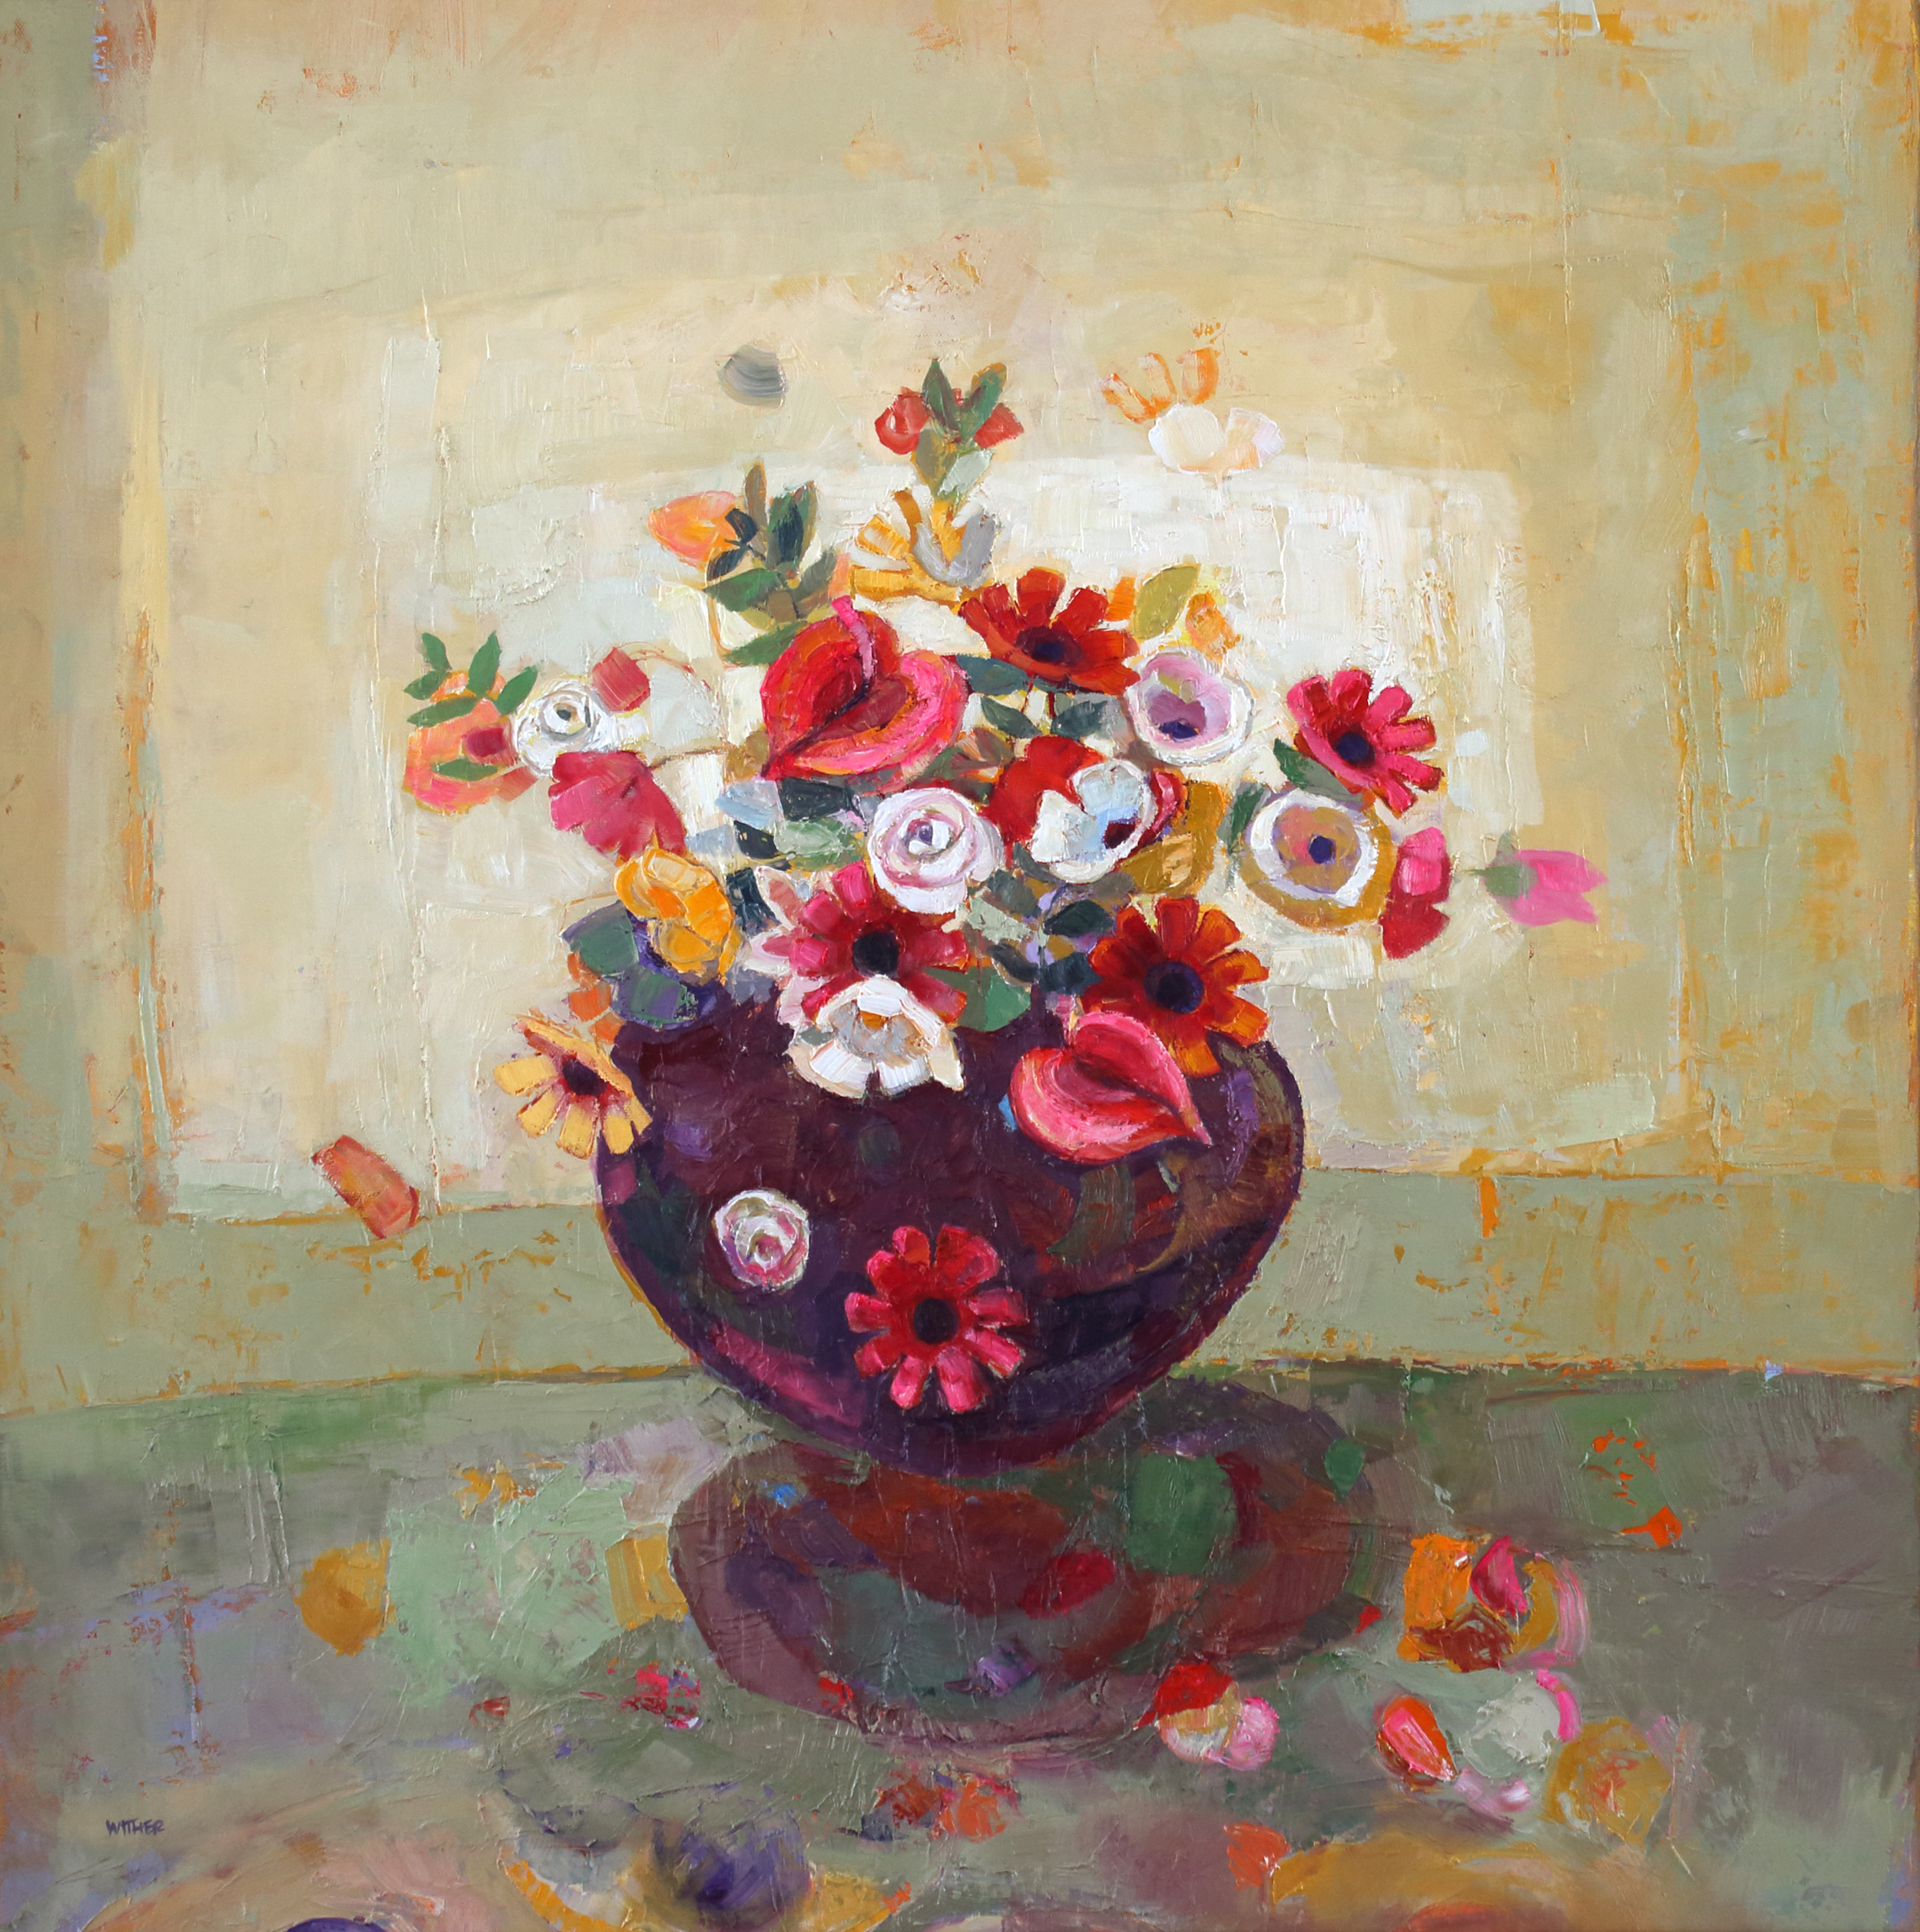 Kirsty-Wither-Wild-Bunch-30x30in- copy.jpg